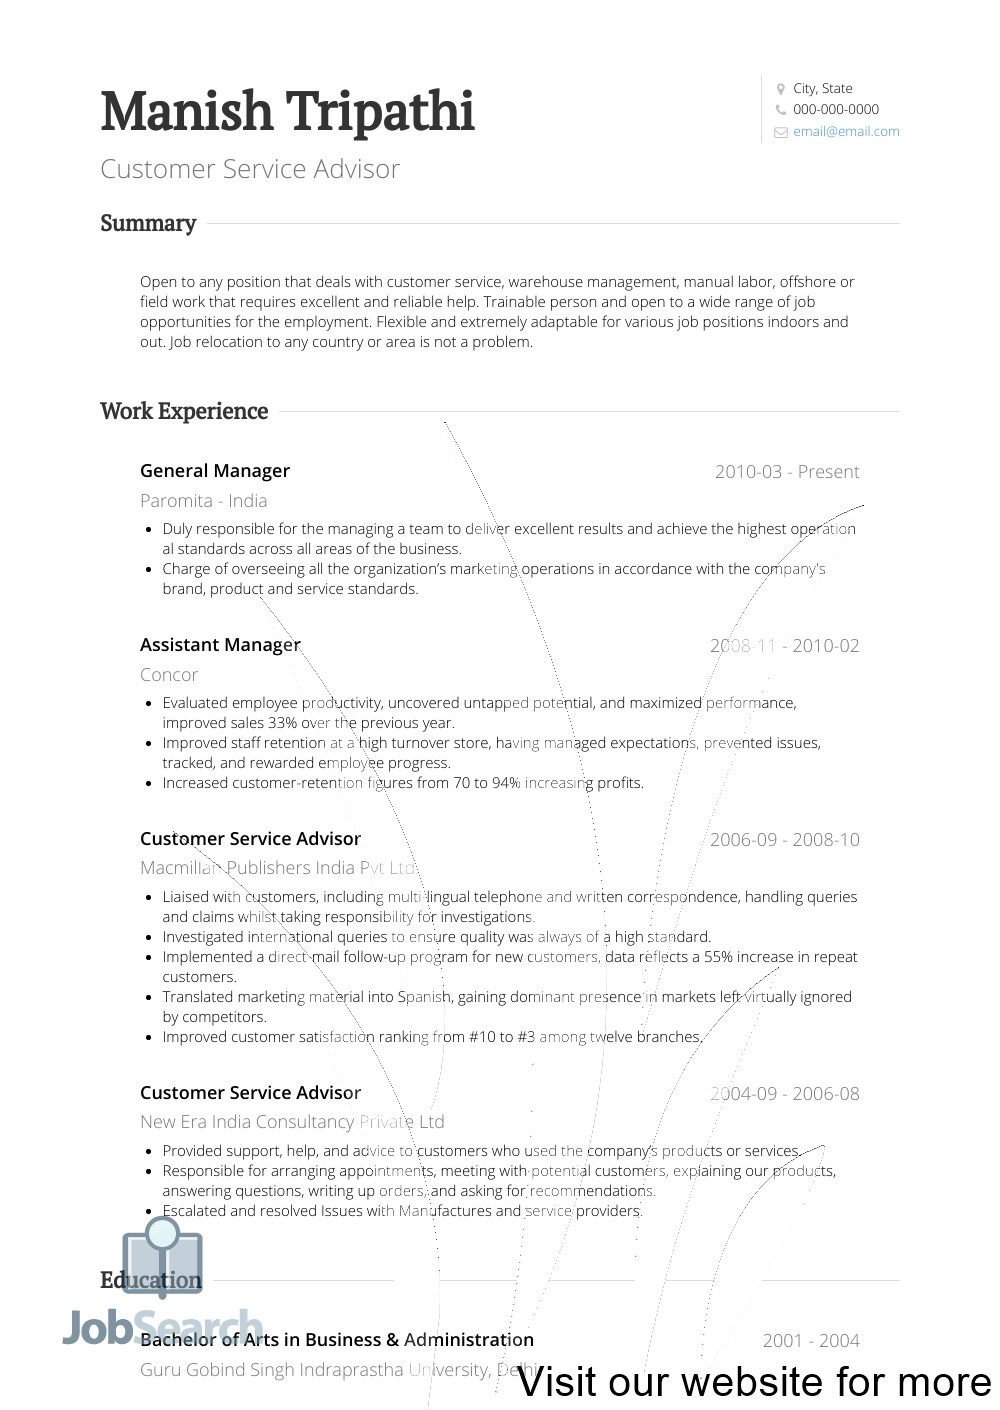 Summary Of Qualifications Resume Sample (With images